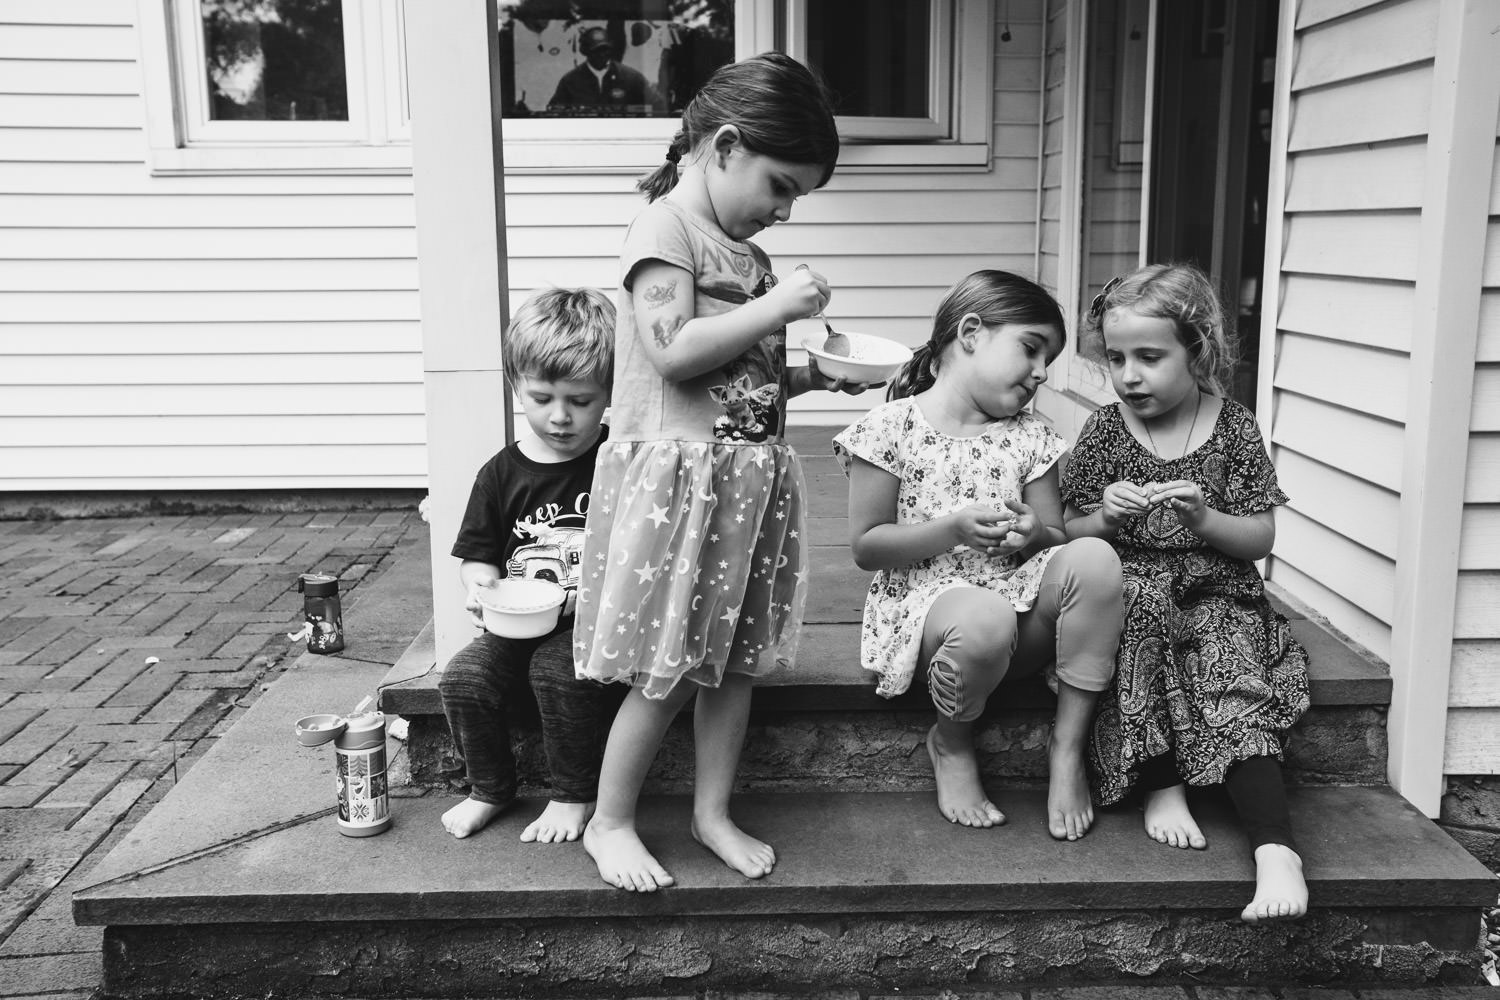 Kids sit and eat their ice cream on the front porch.